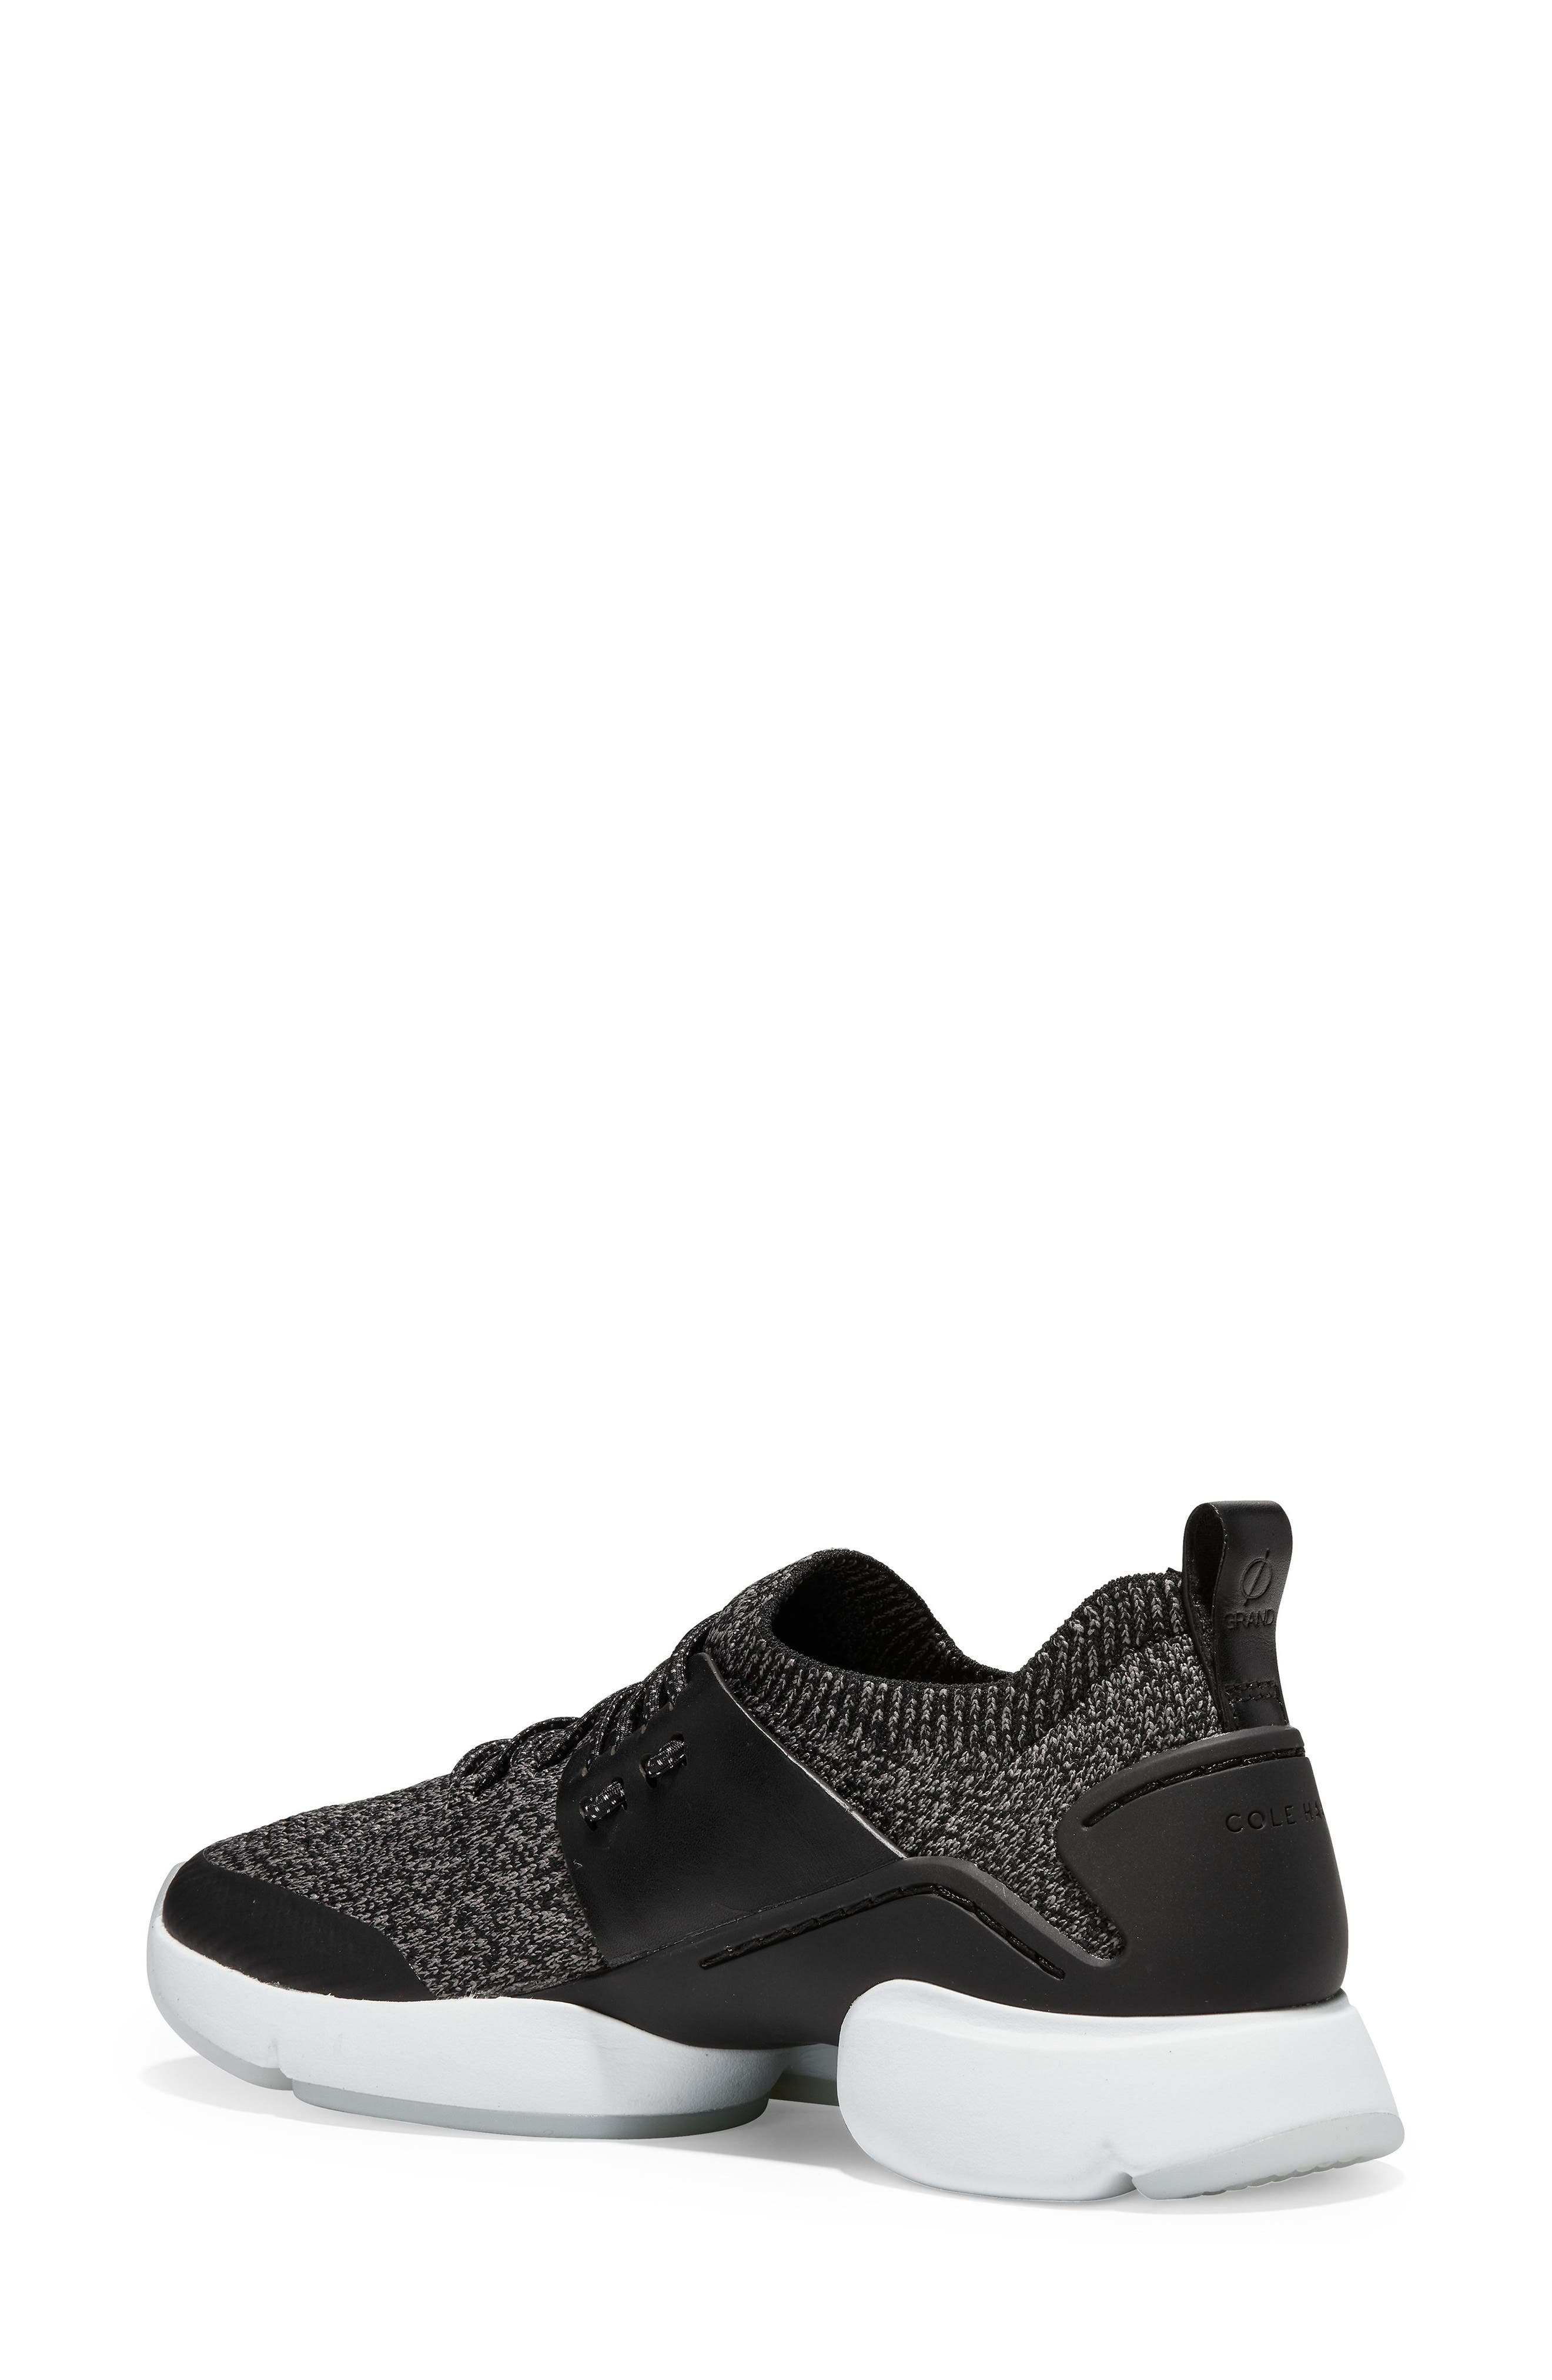 COLE HAAN, ZeroGrand All Day Trainer Sneaker, Alternate thumbnail 2, color, BLACK LEATHER